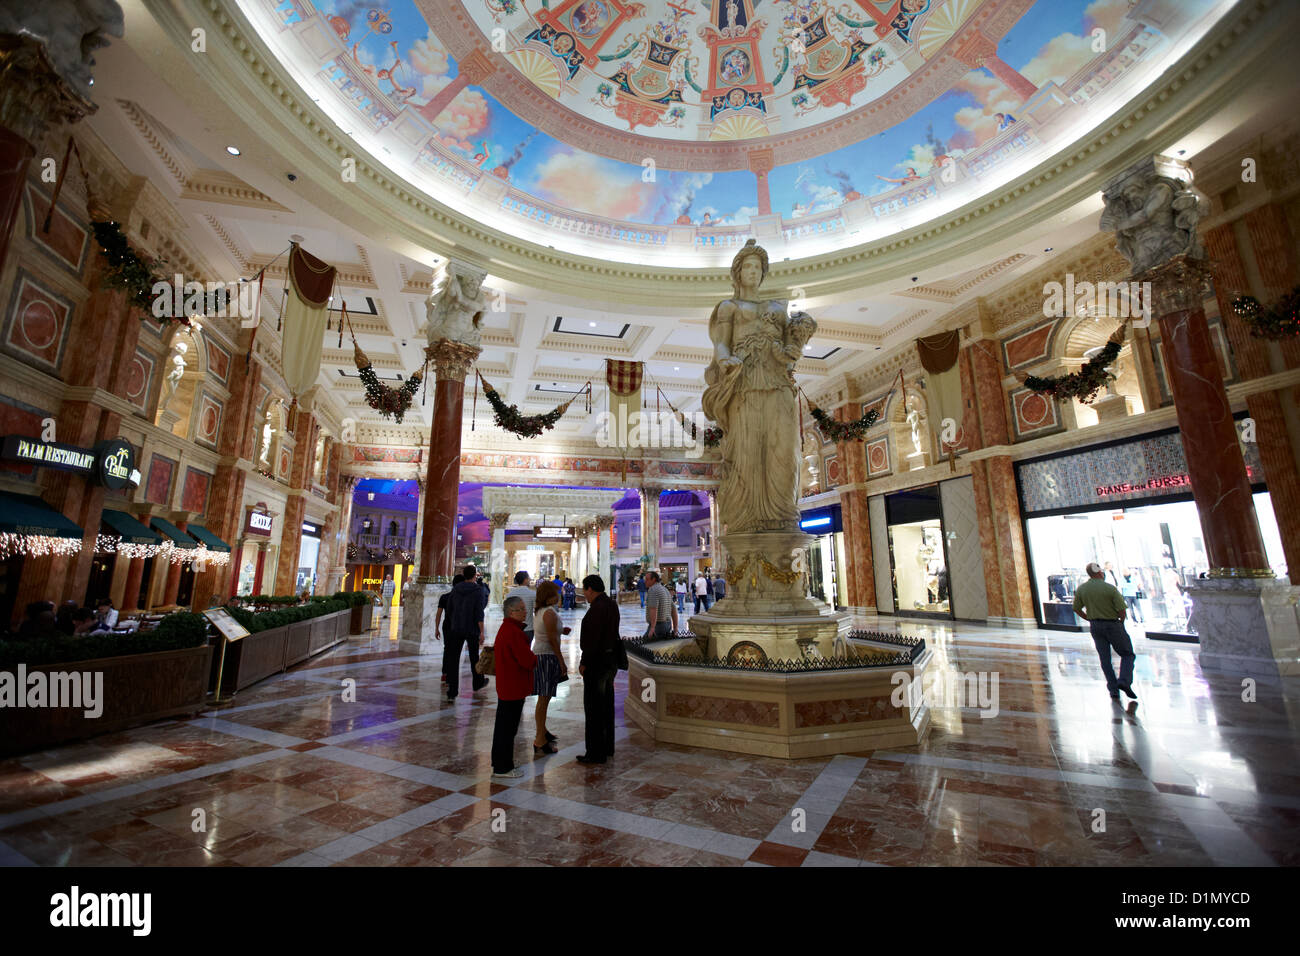 Luxury Hotel Foyer : Foyer and entrance to the forum shops at caesars palace